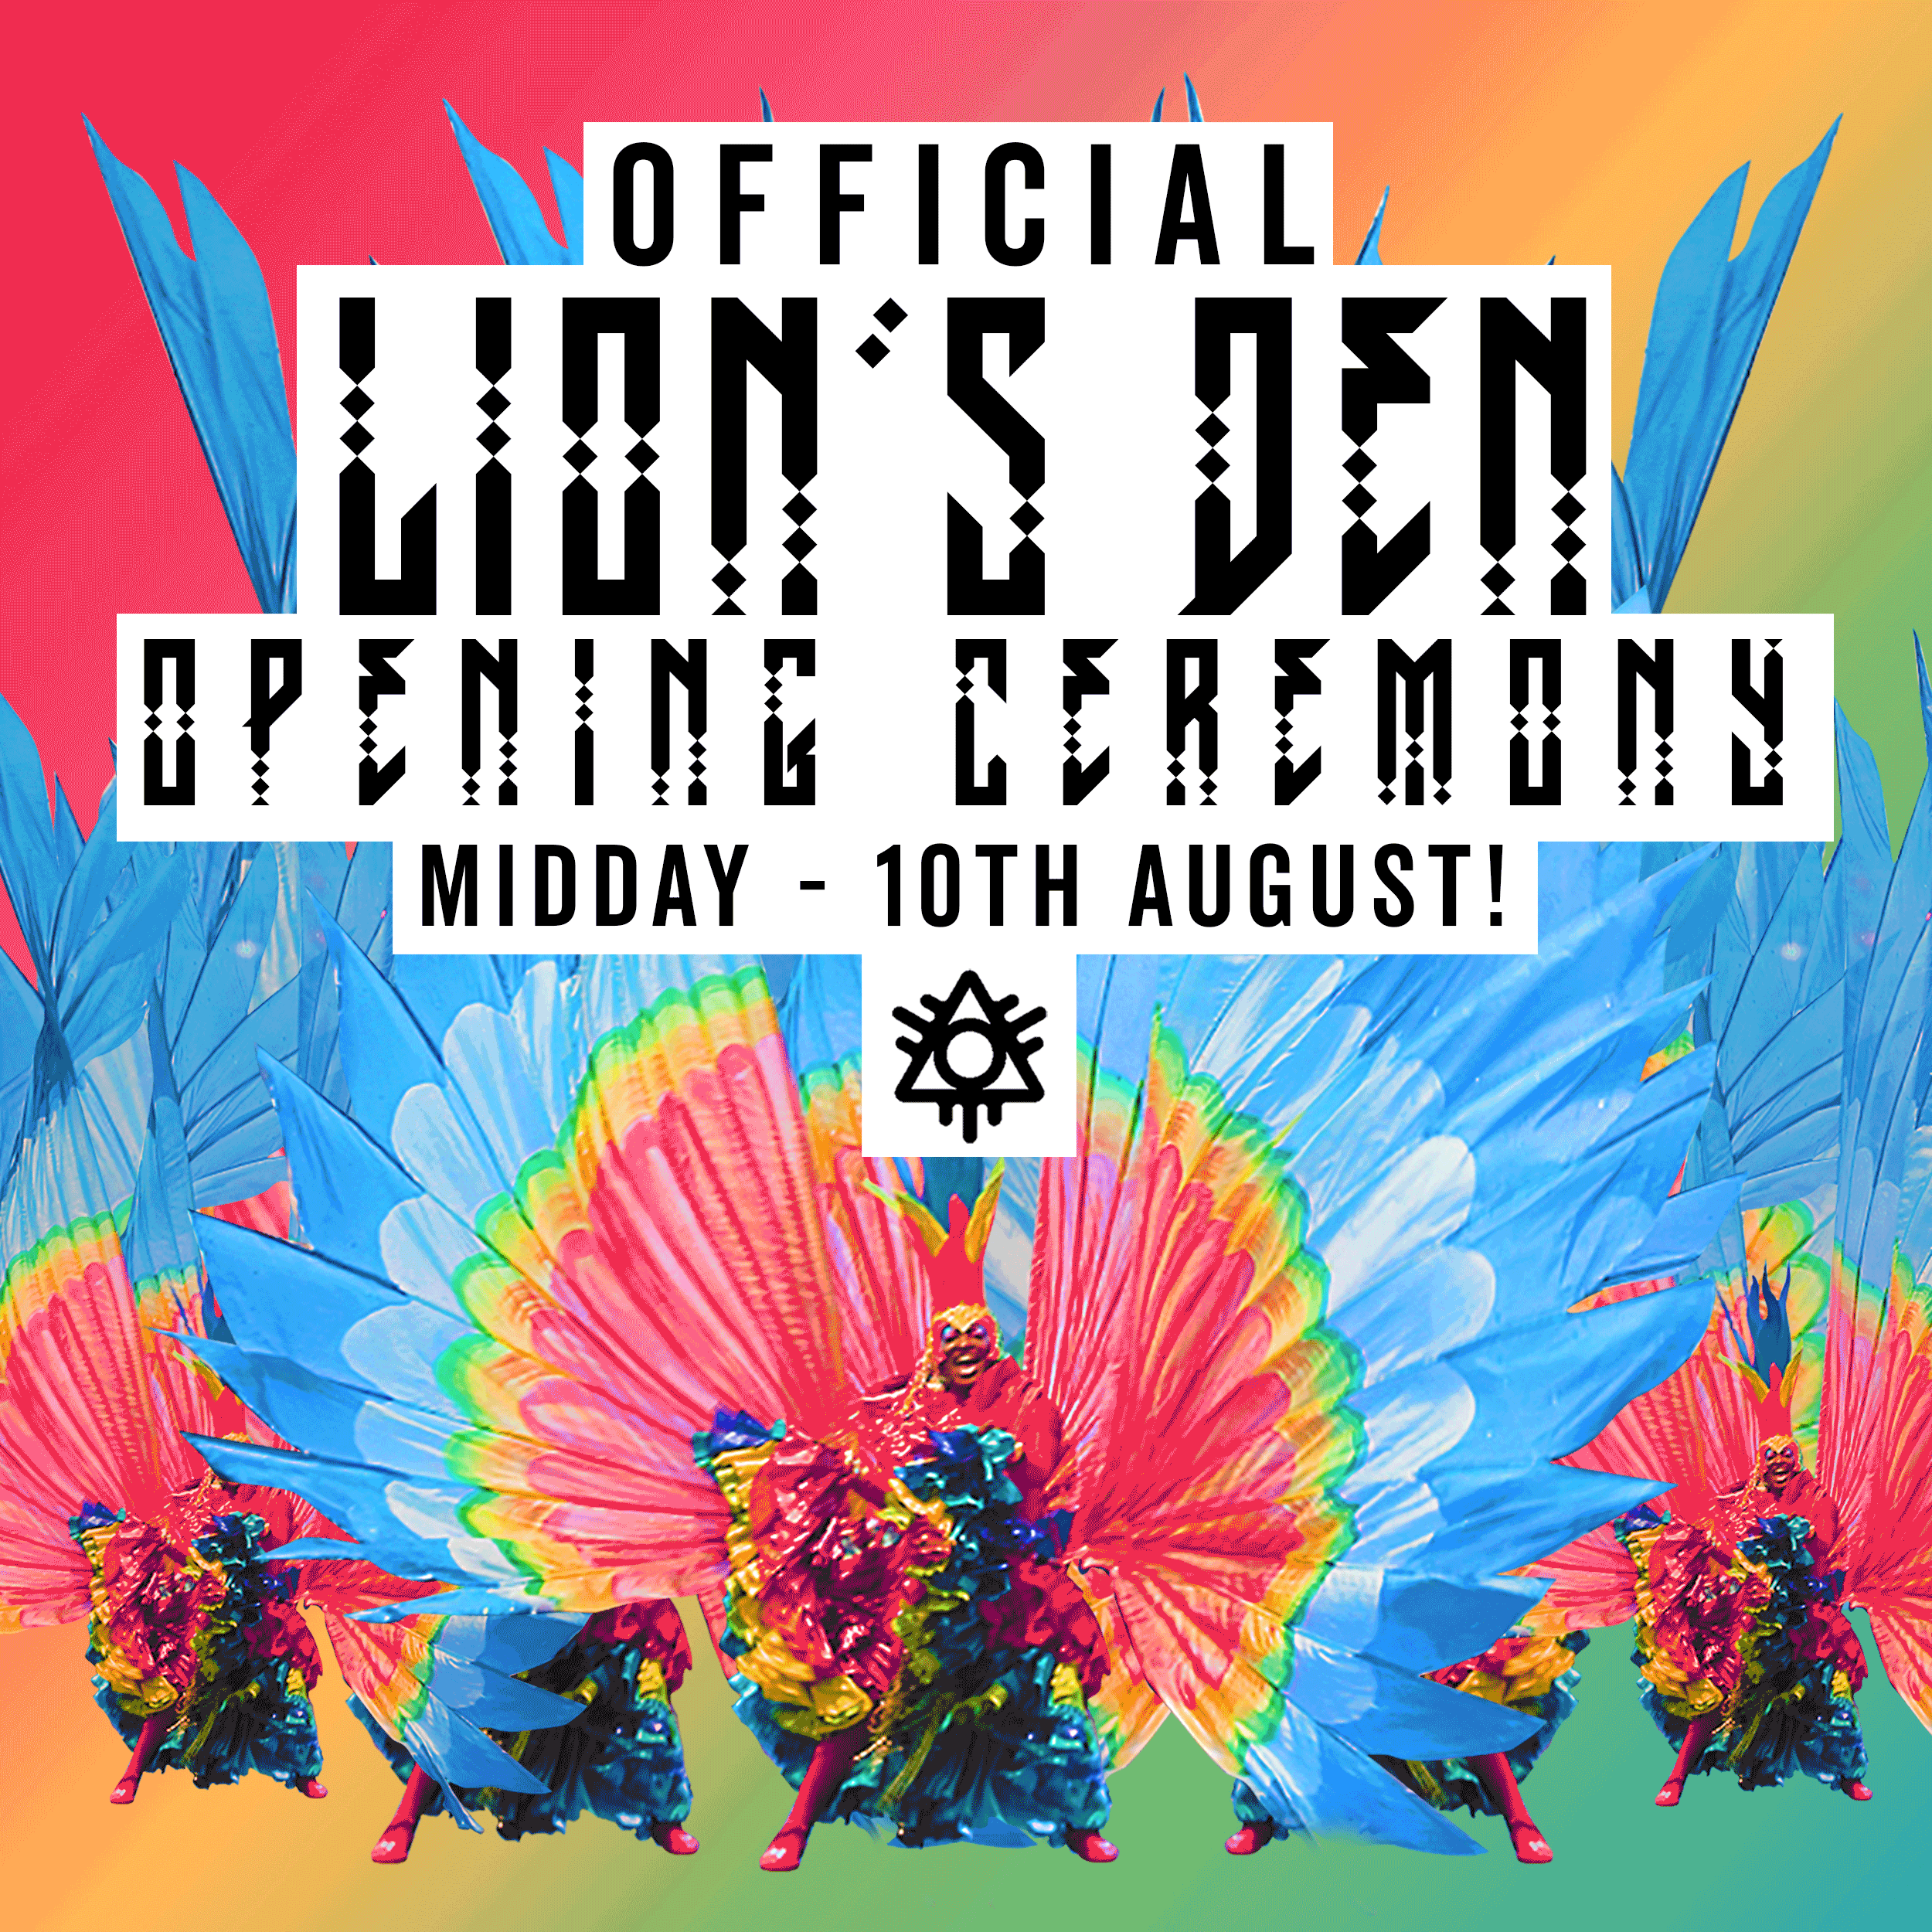 Official Opening Ceremony - Midday Friday 10th August